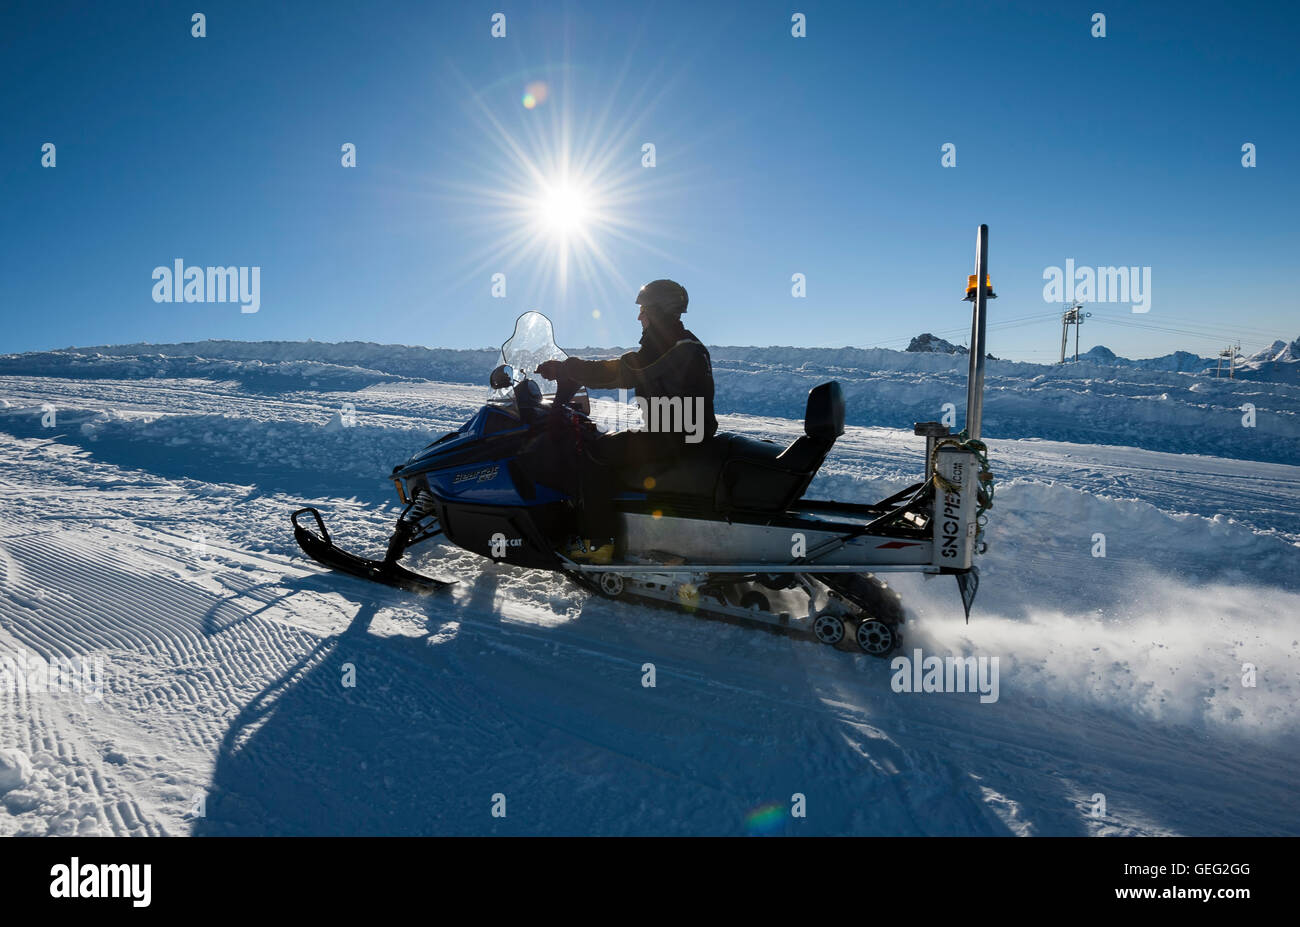 contre-jour shot of a men driving snowbike a and going to the Glacier, ski resort called 'les Deux Alpes'. - Stock Image